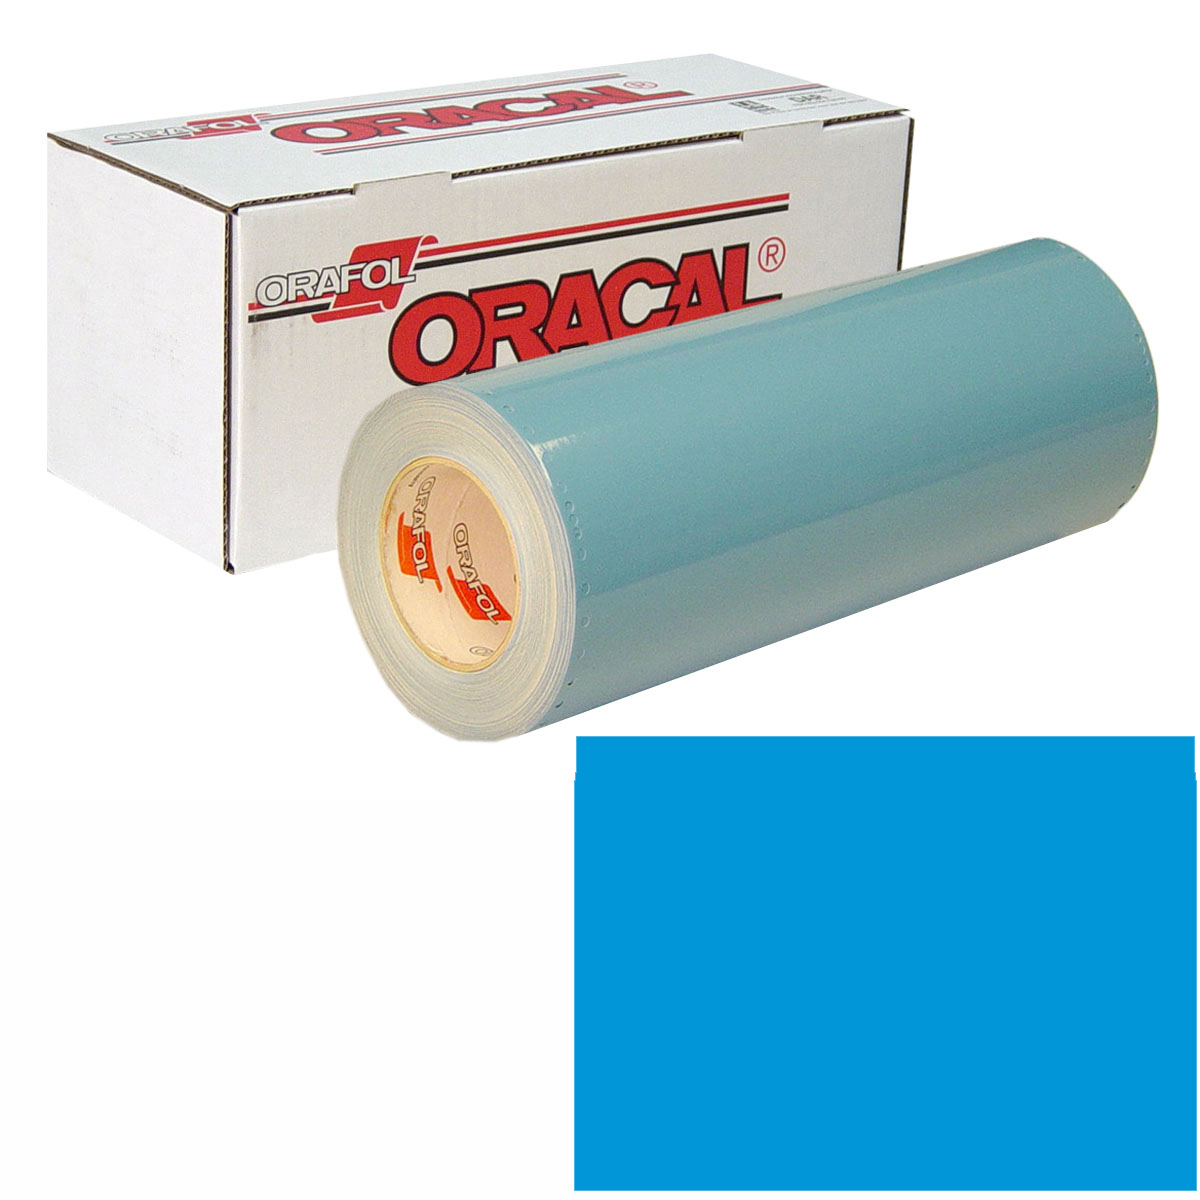 ORACAL 751 Unp 24In X 10Yd 052 Azure Blue